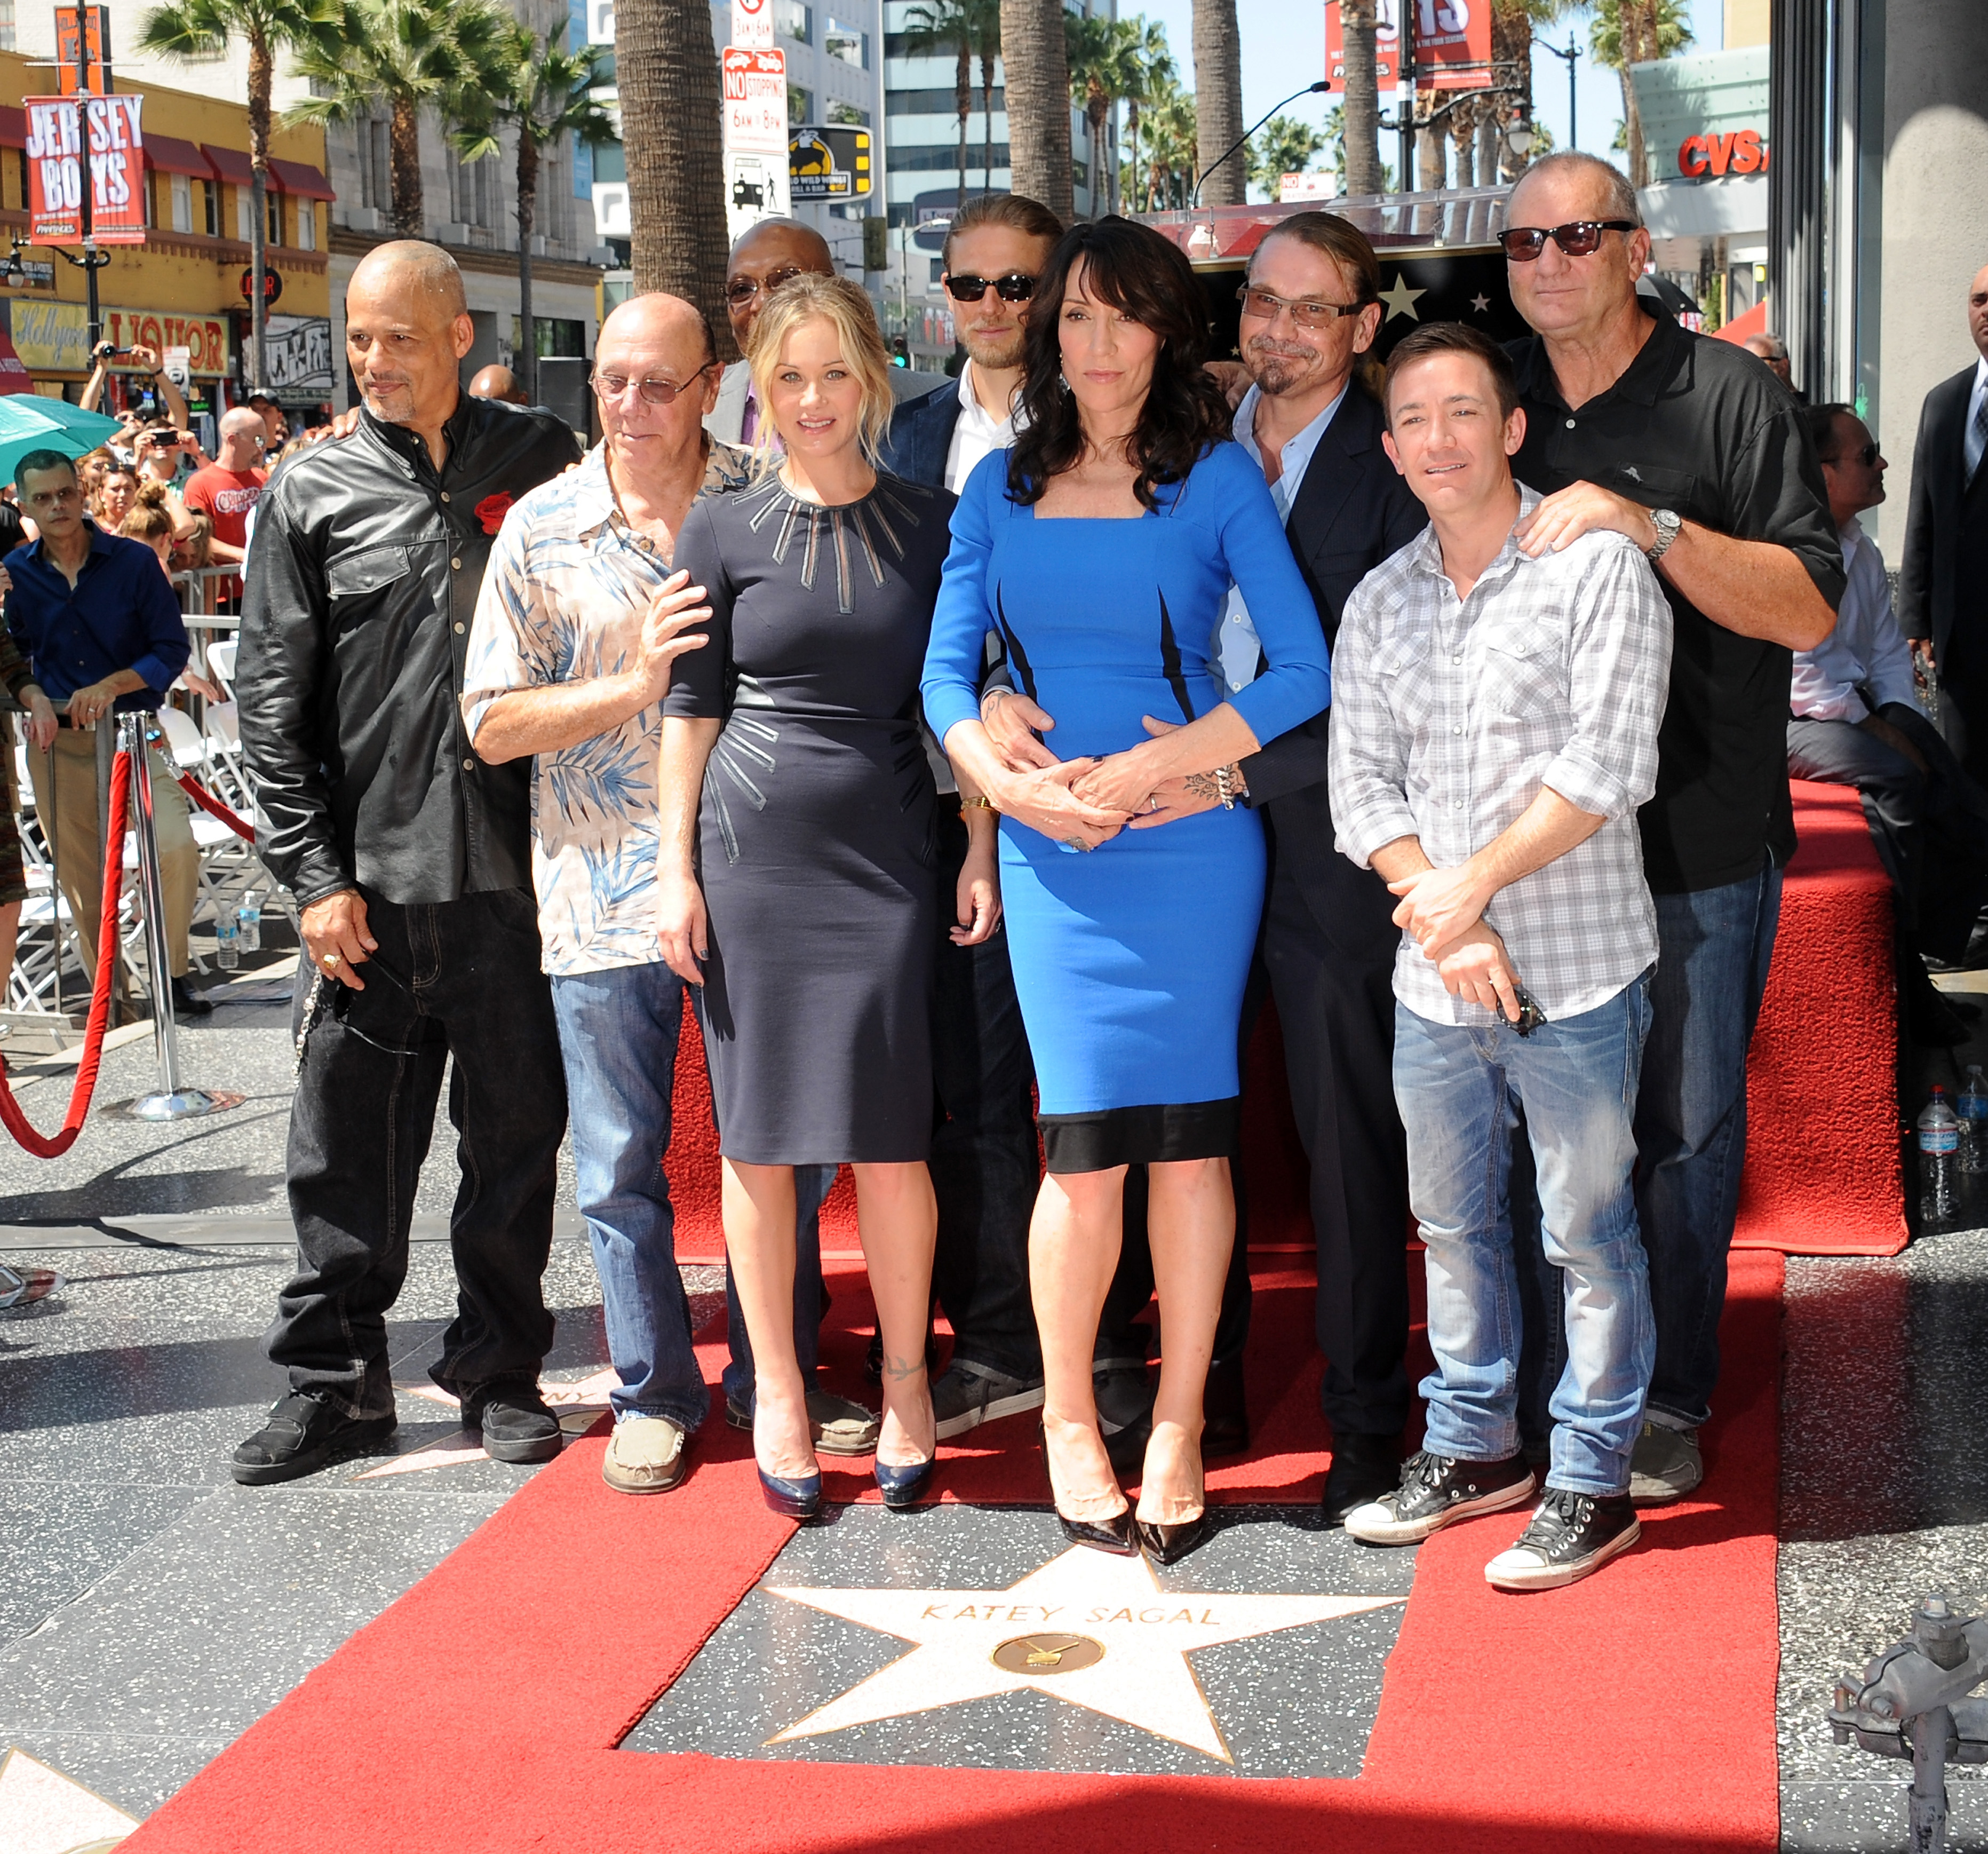 Actors David Labrava, Dayton Callie, Christina Applegate, Charlie Hunnam, Katey Sagal, Kurt Sutter, David Faustino and Ed O'Neill at Katey Sagal's Star Ceremony  on the Hollywood Walk Of Fame on Sept. 9, 2014 in Hollywood.